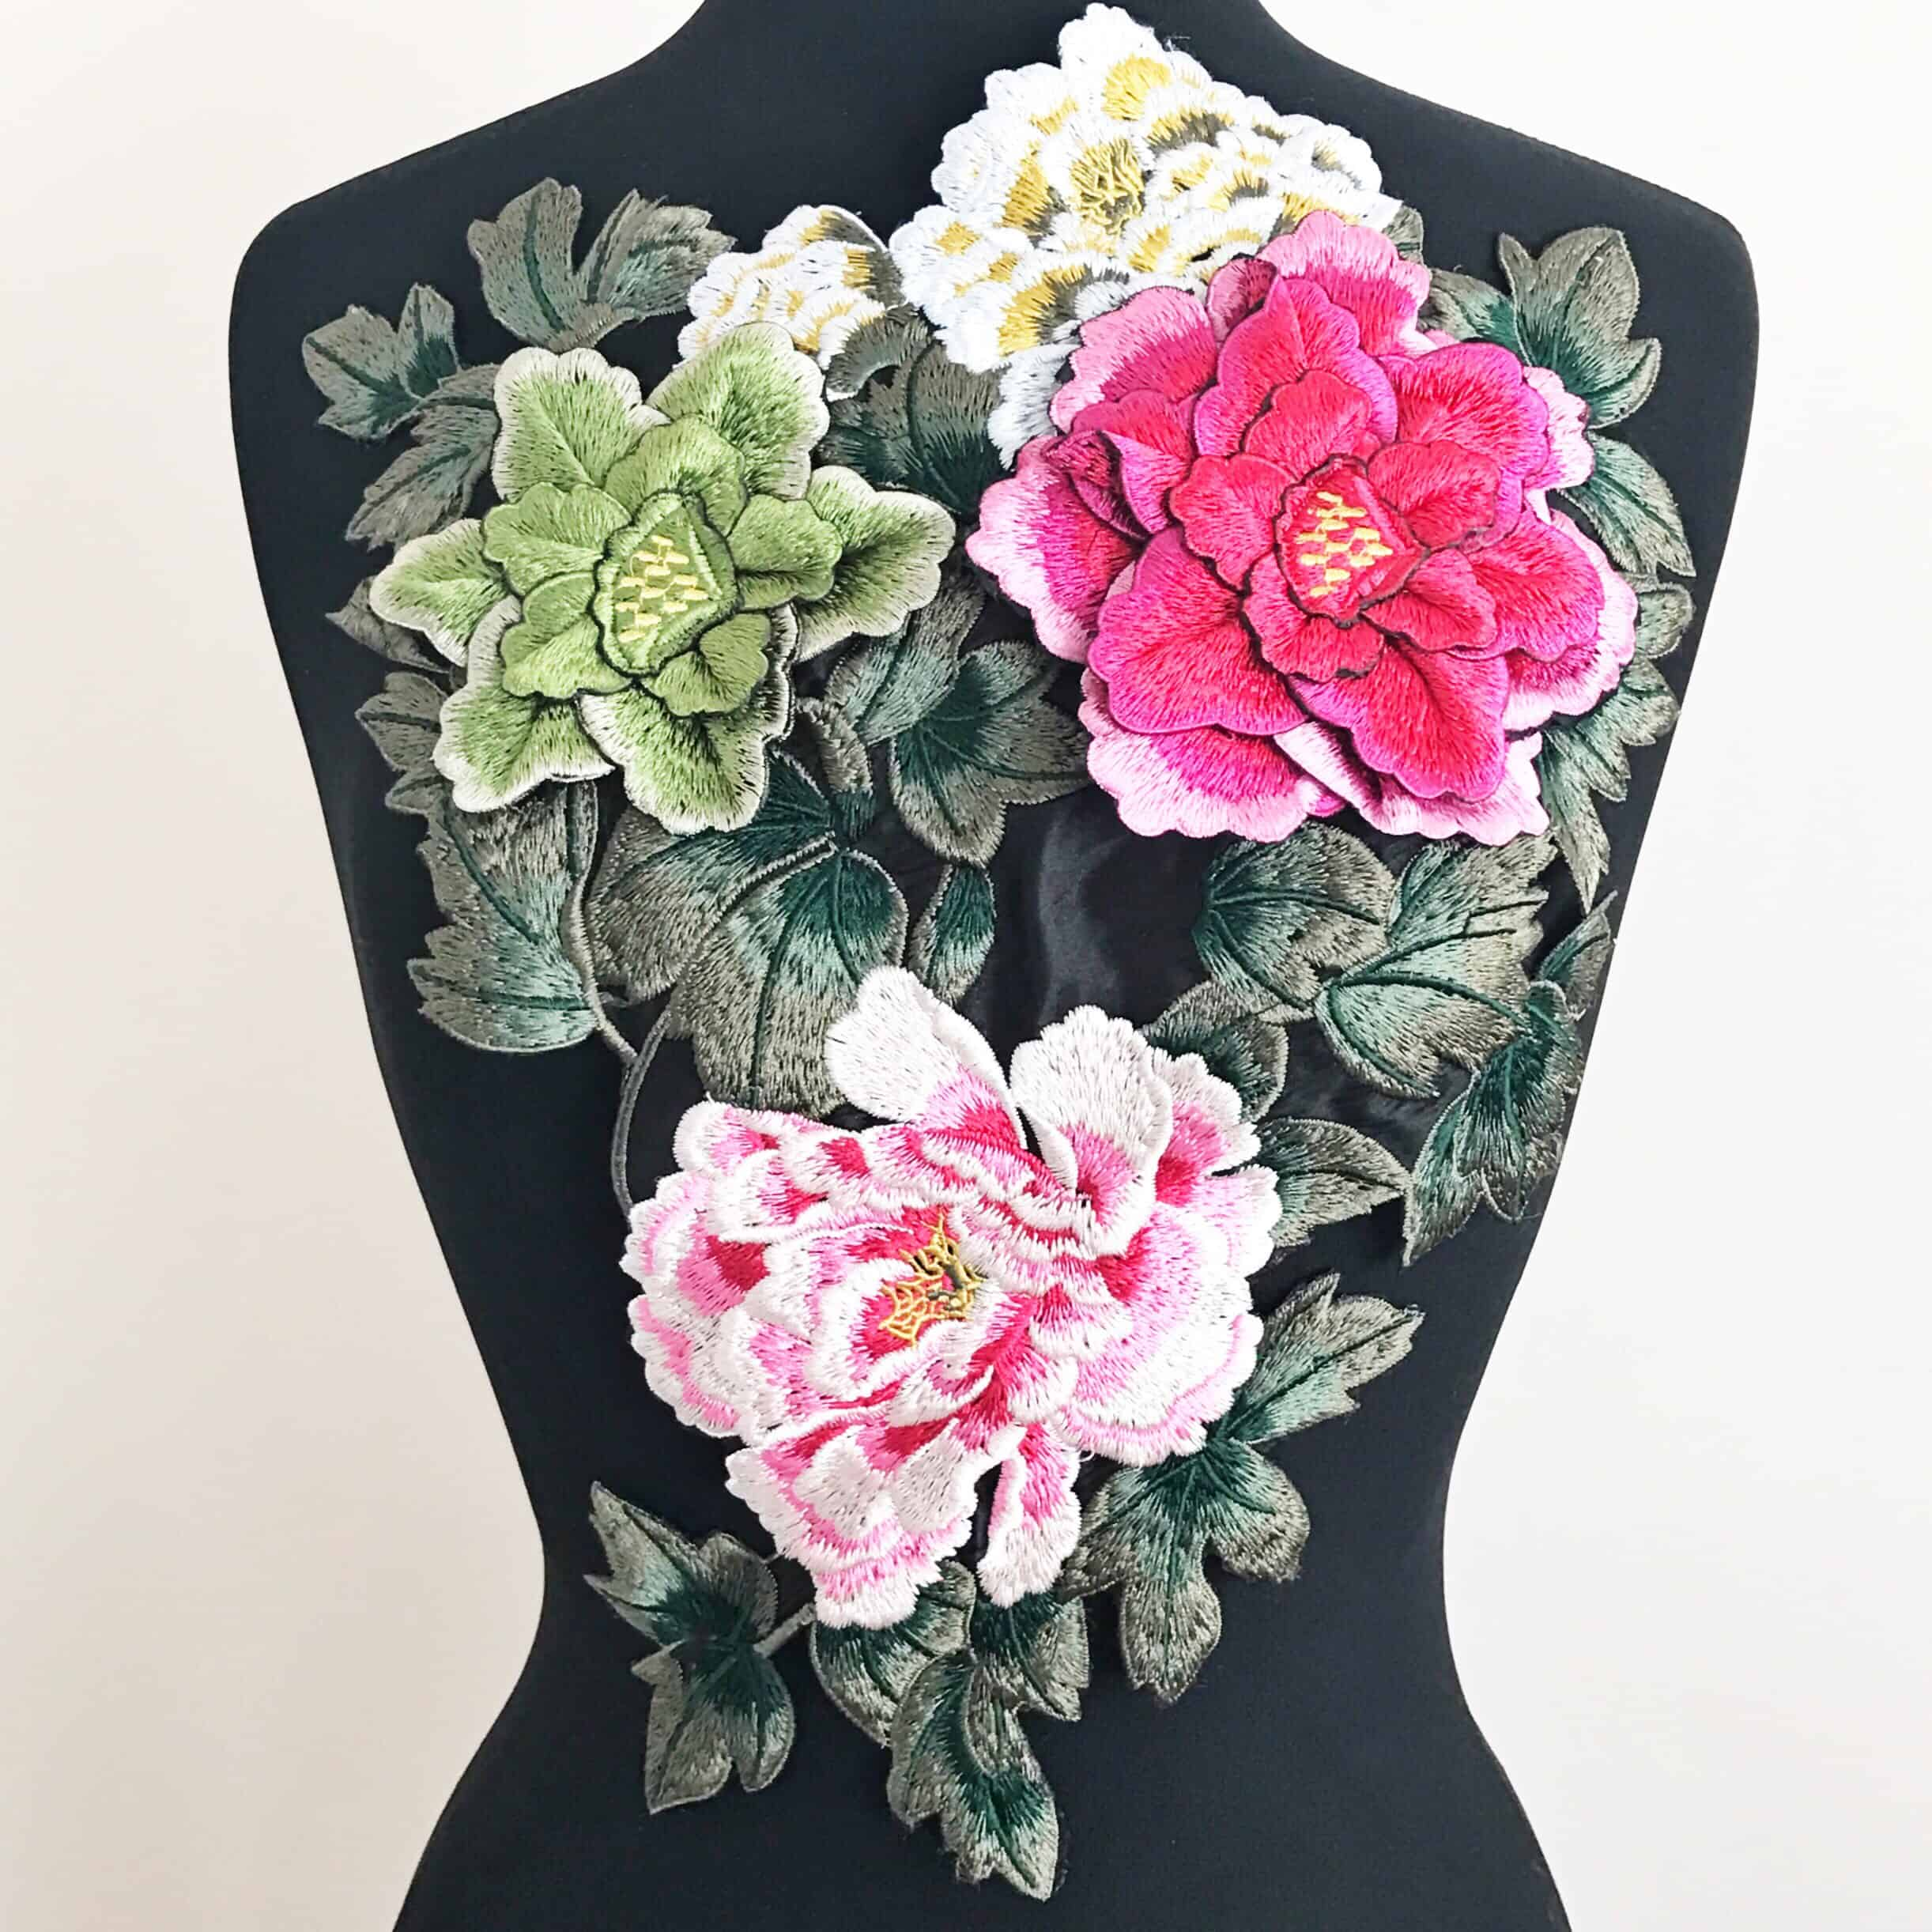 3D Floral Bouquet Embroidered Applique on Black Fabric